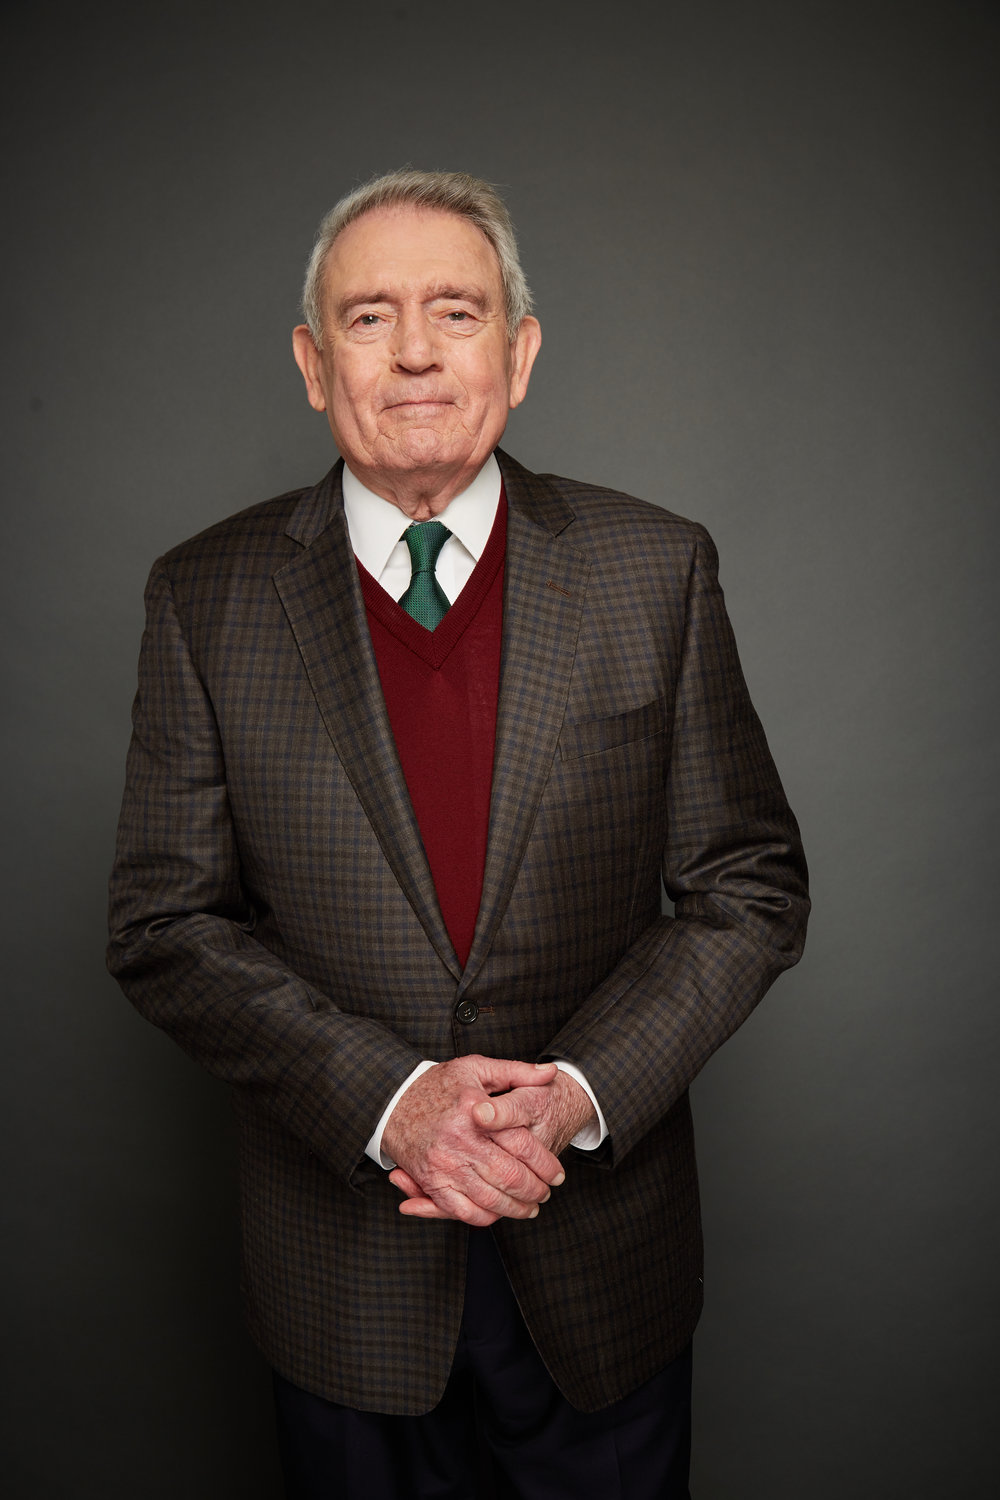 AXS Dan Rather_SV5D4347_APPROVED.jpg